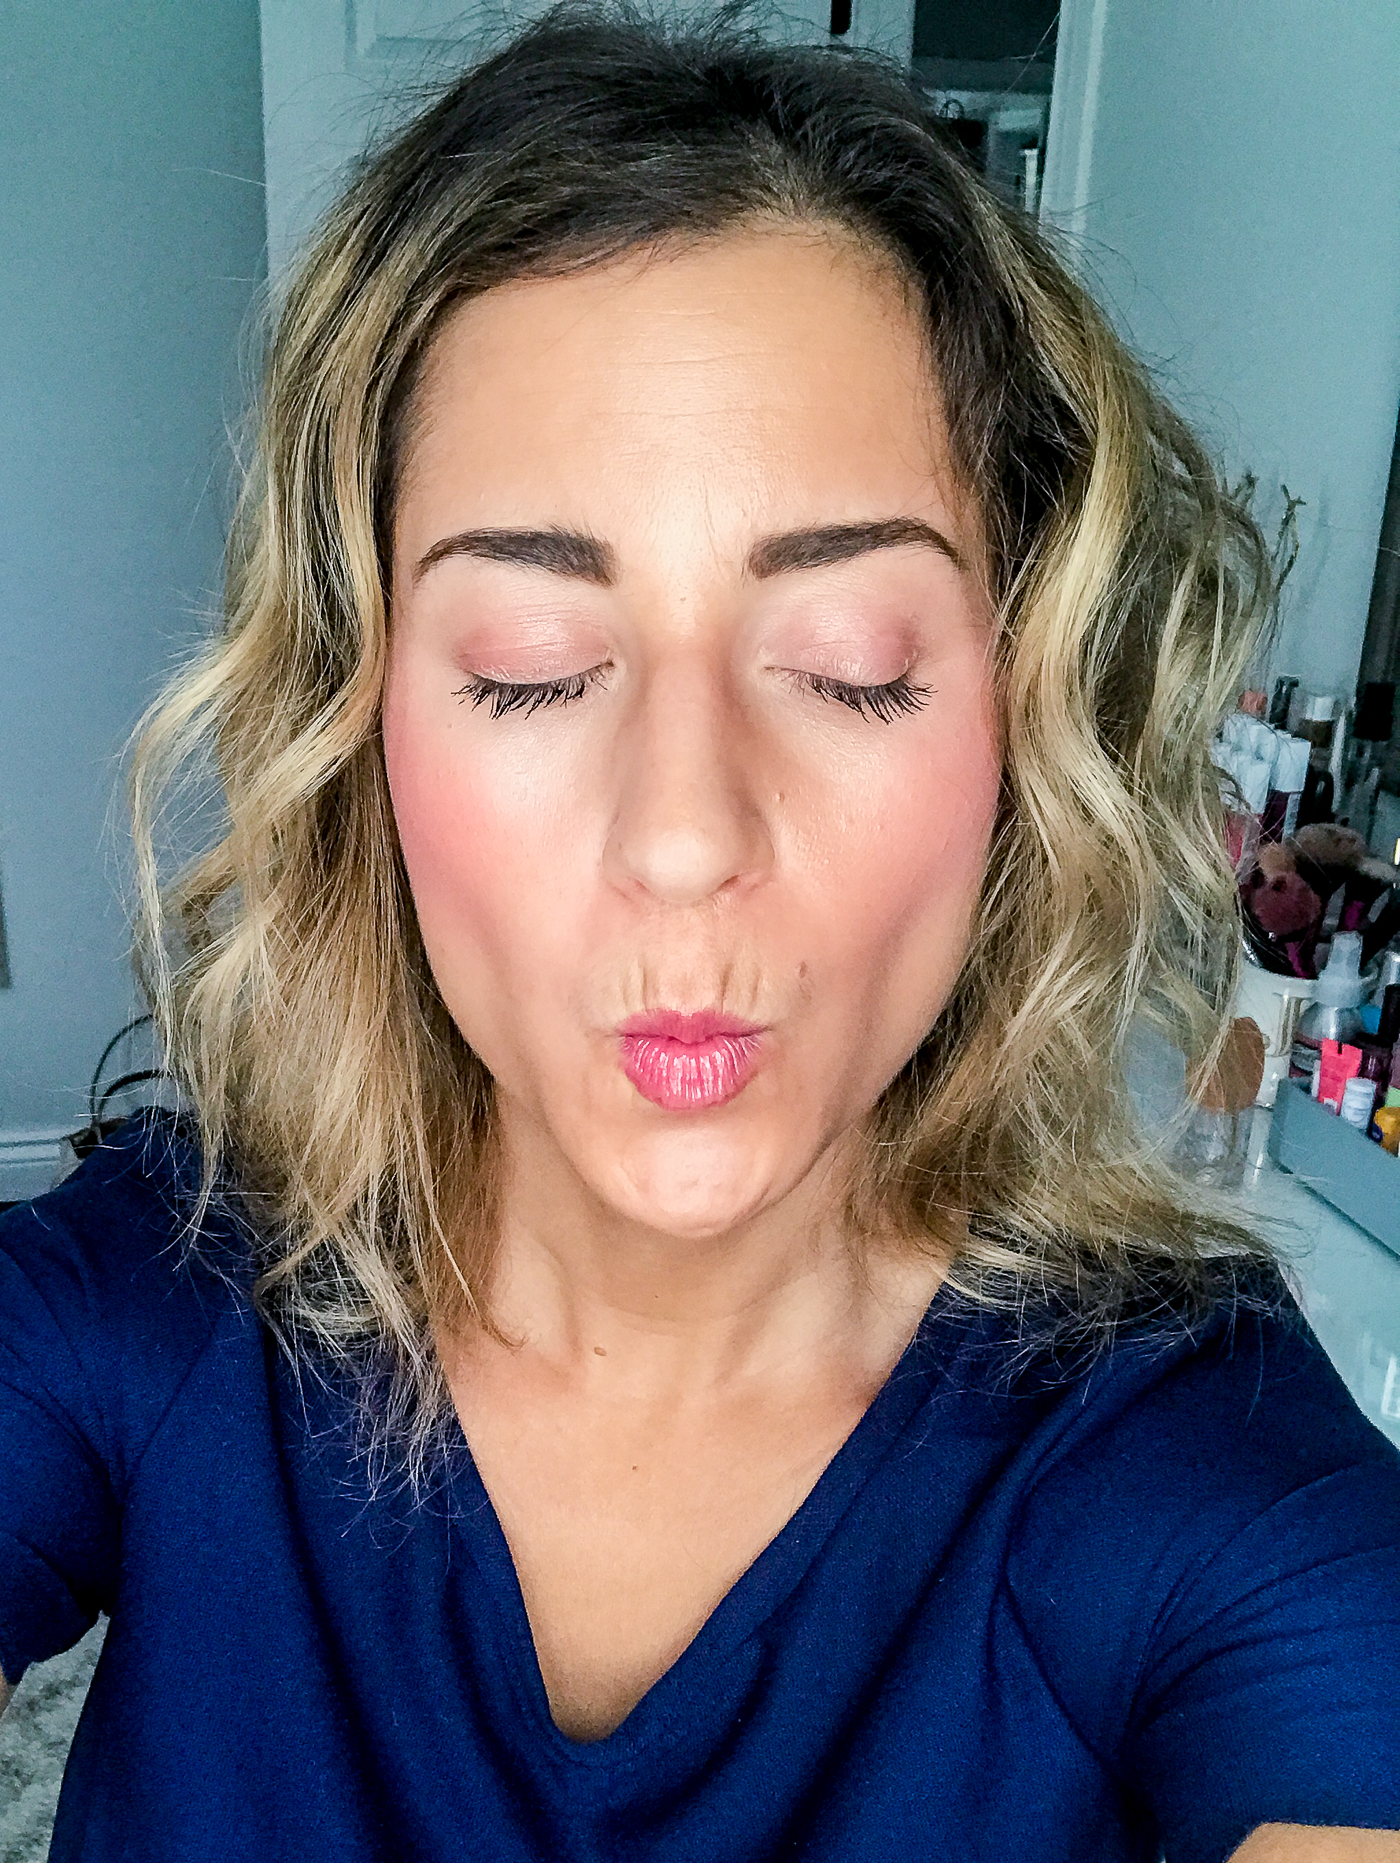 Toronto fashion and lifestyle blogger, Jackie at Something About That, is sharing her products used as a part of her super simple summer makeup routine